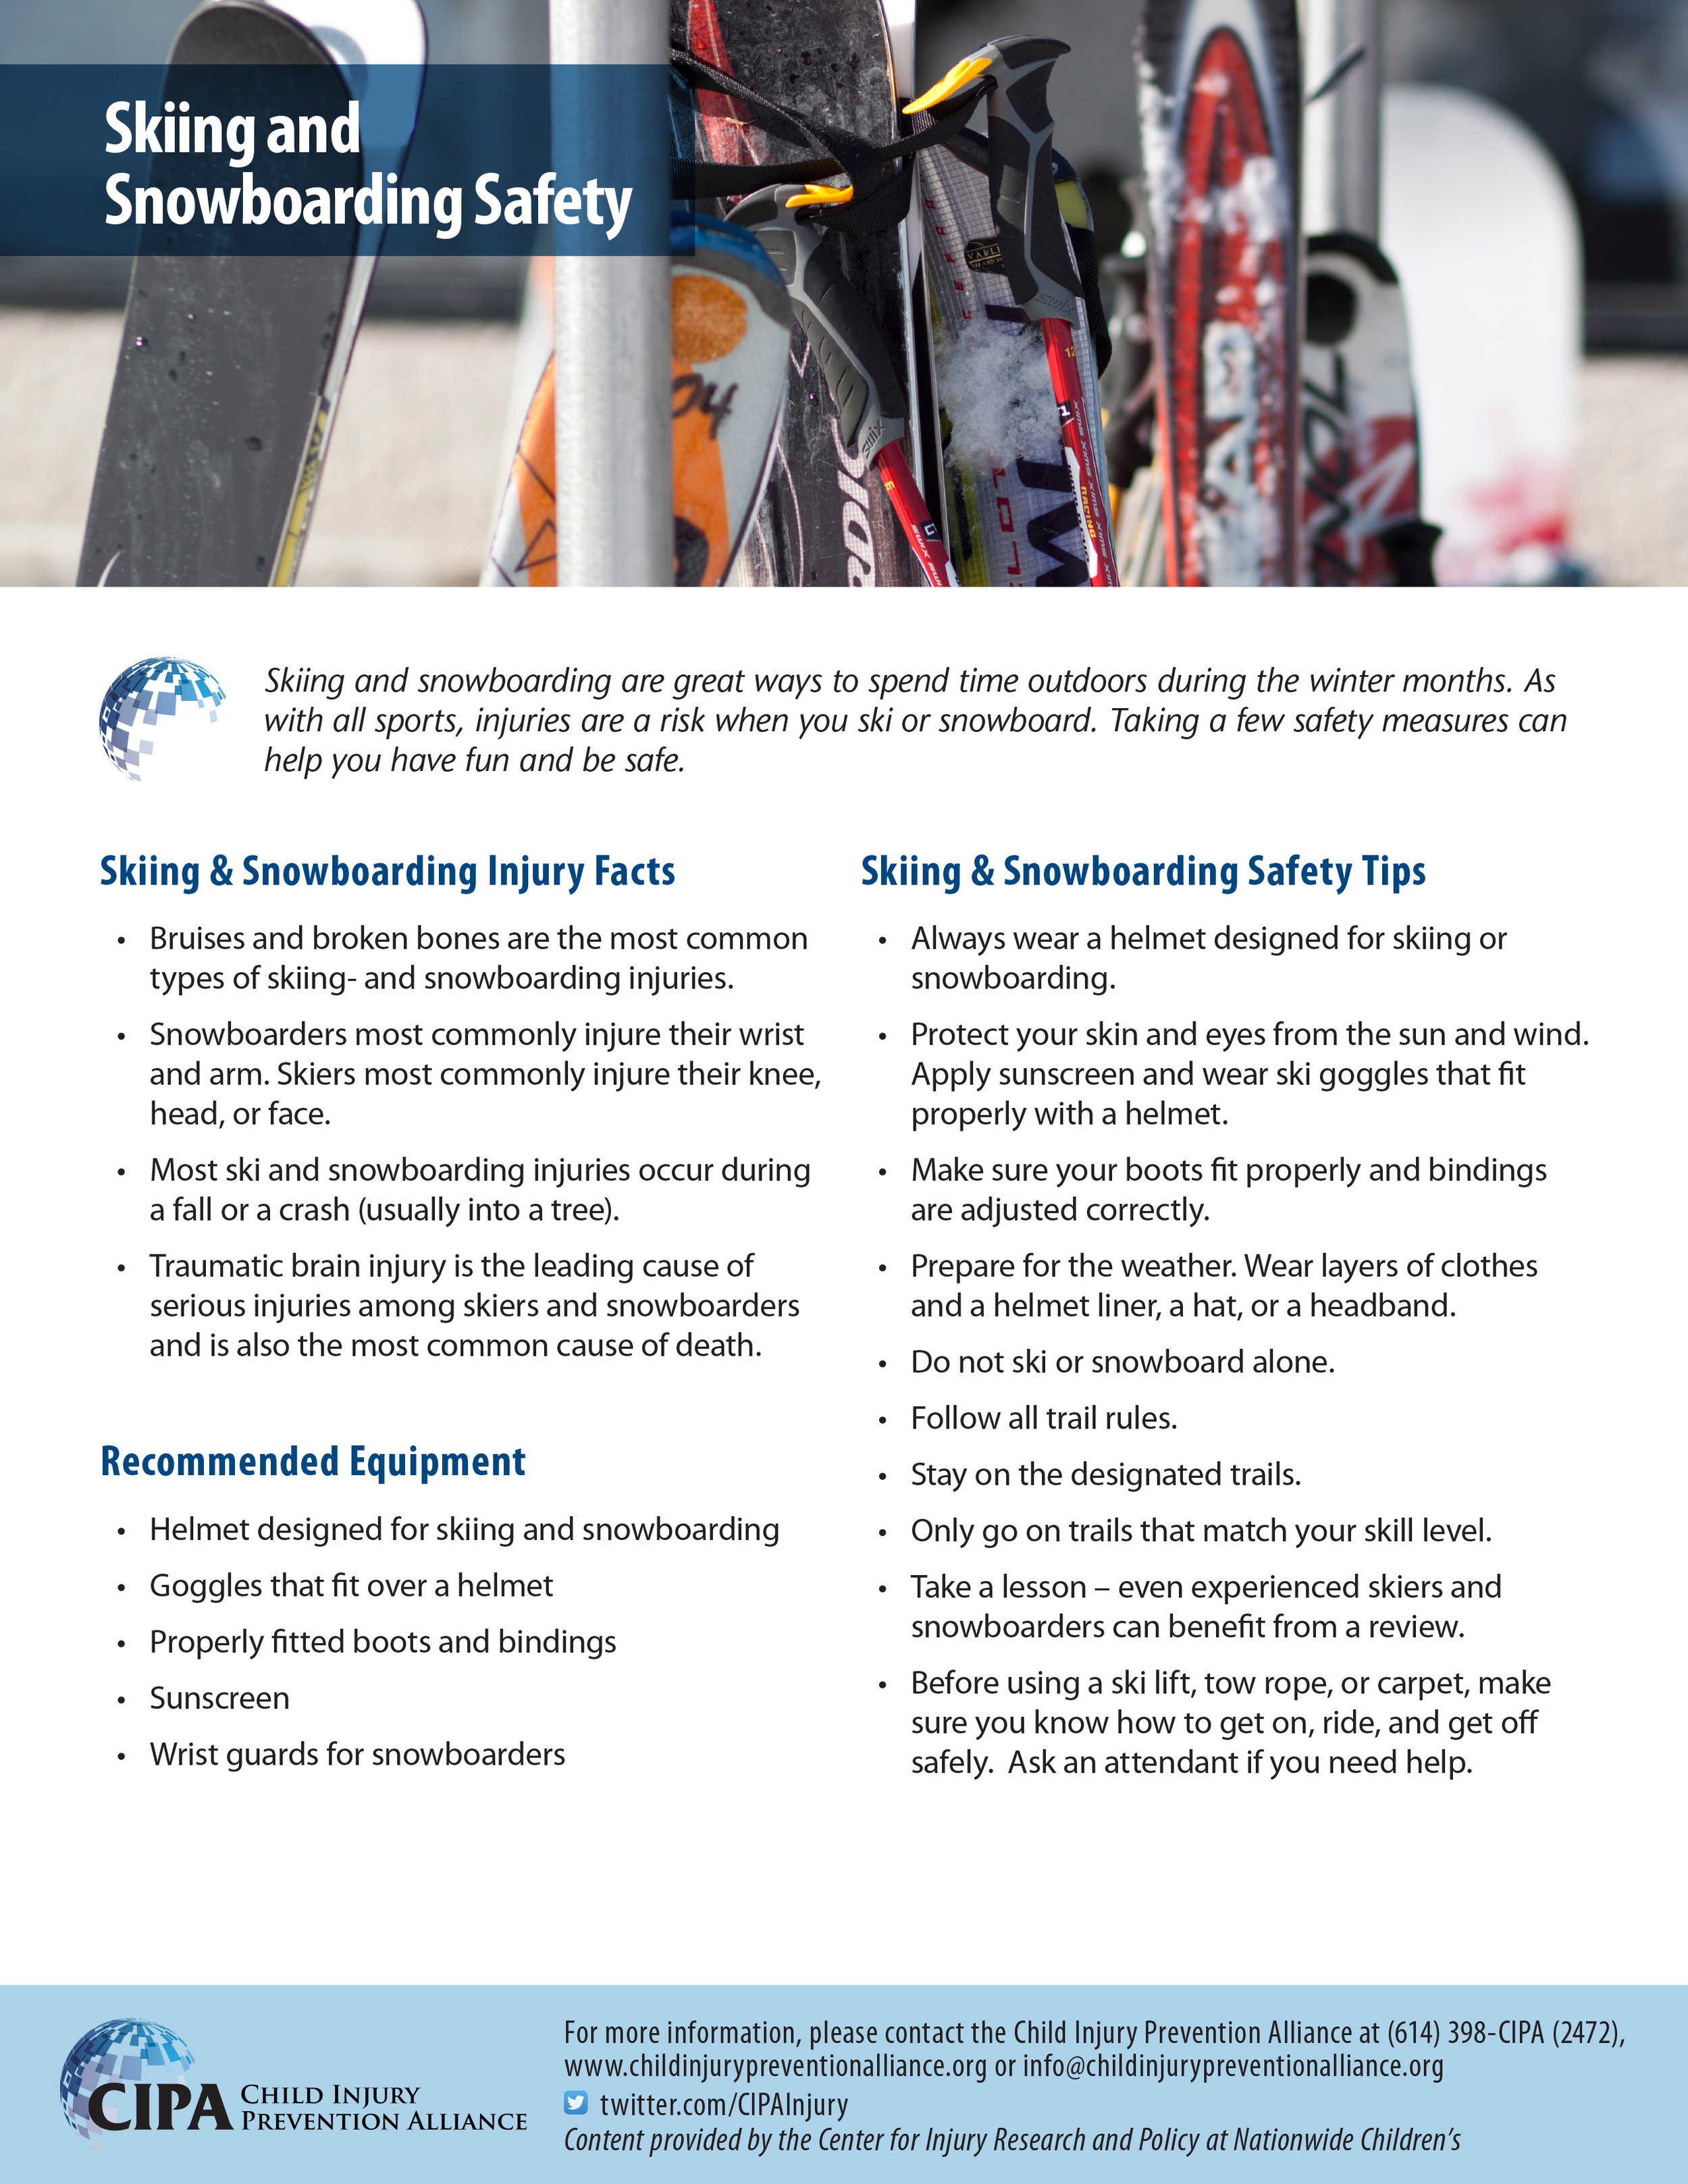 skiing-snowboarding-safety-fact-sheet.jpg